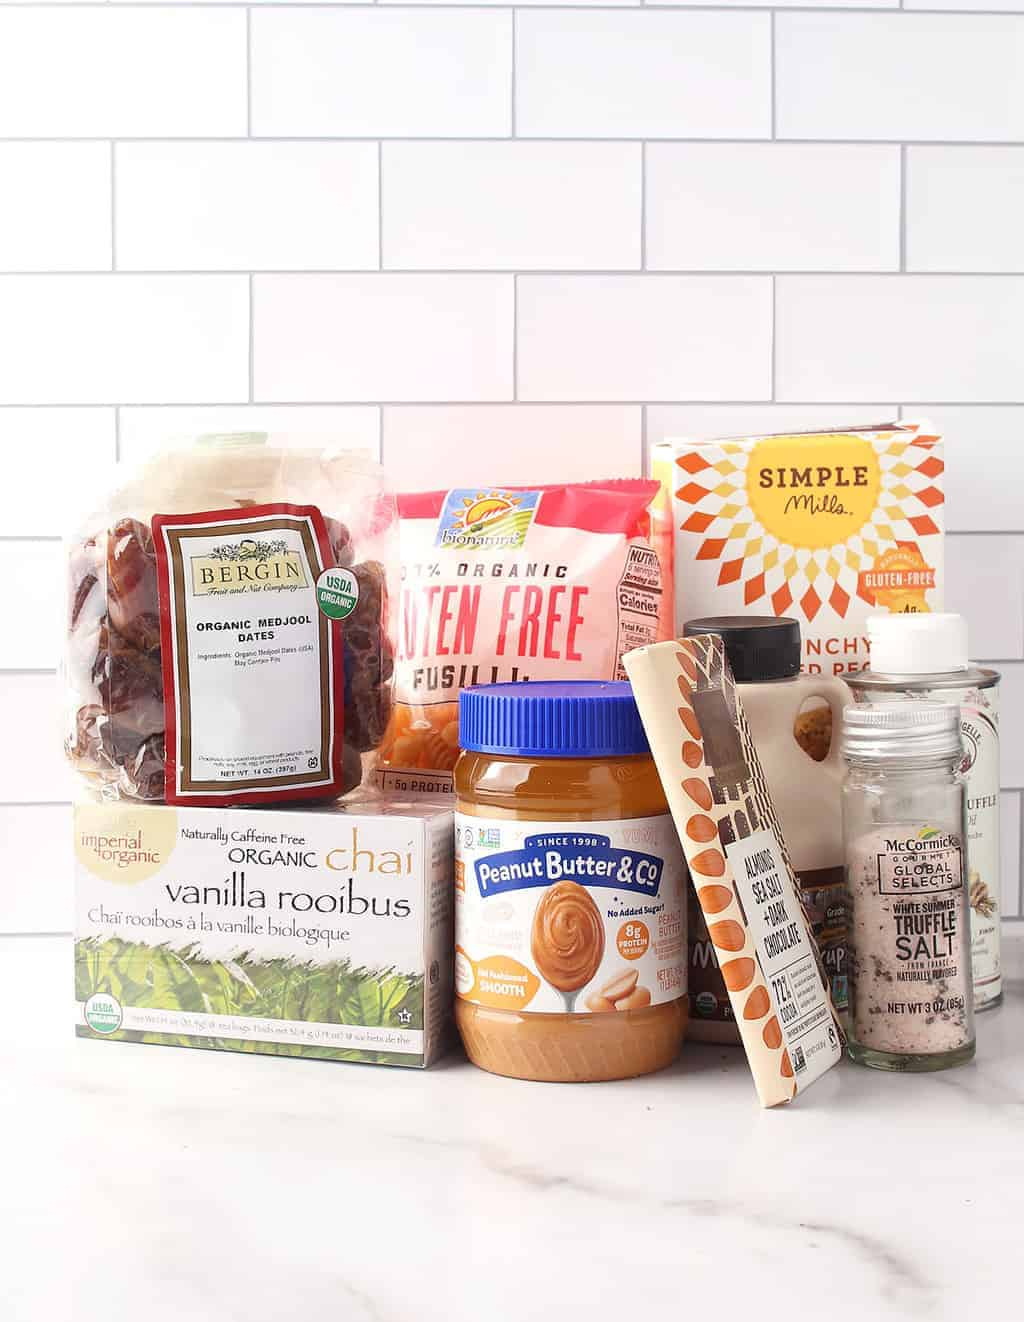 Mini-Haul groceries from iHerb